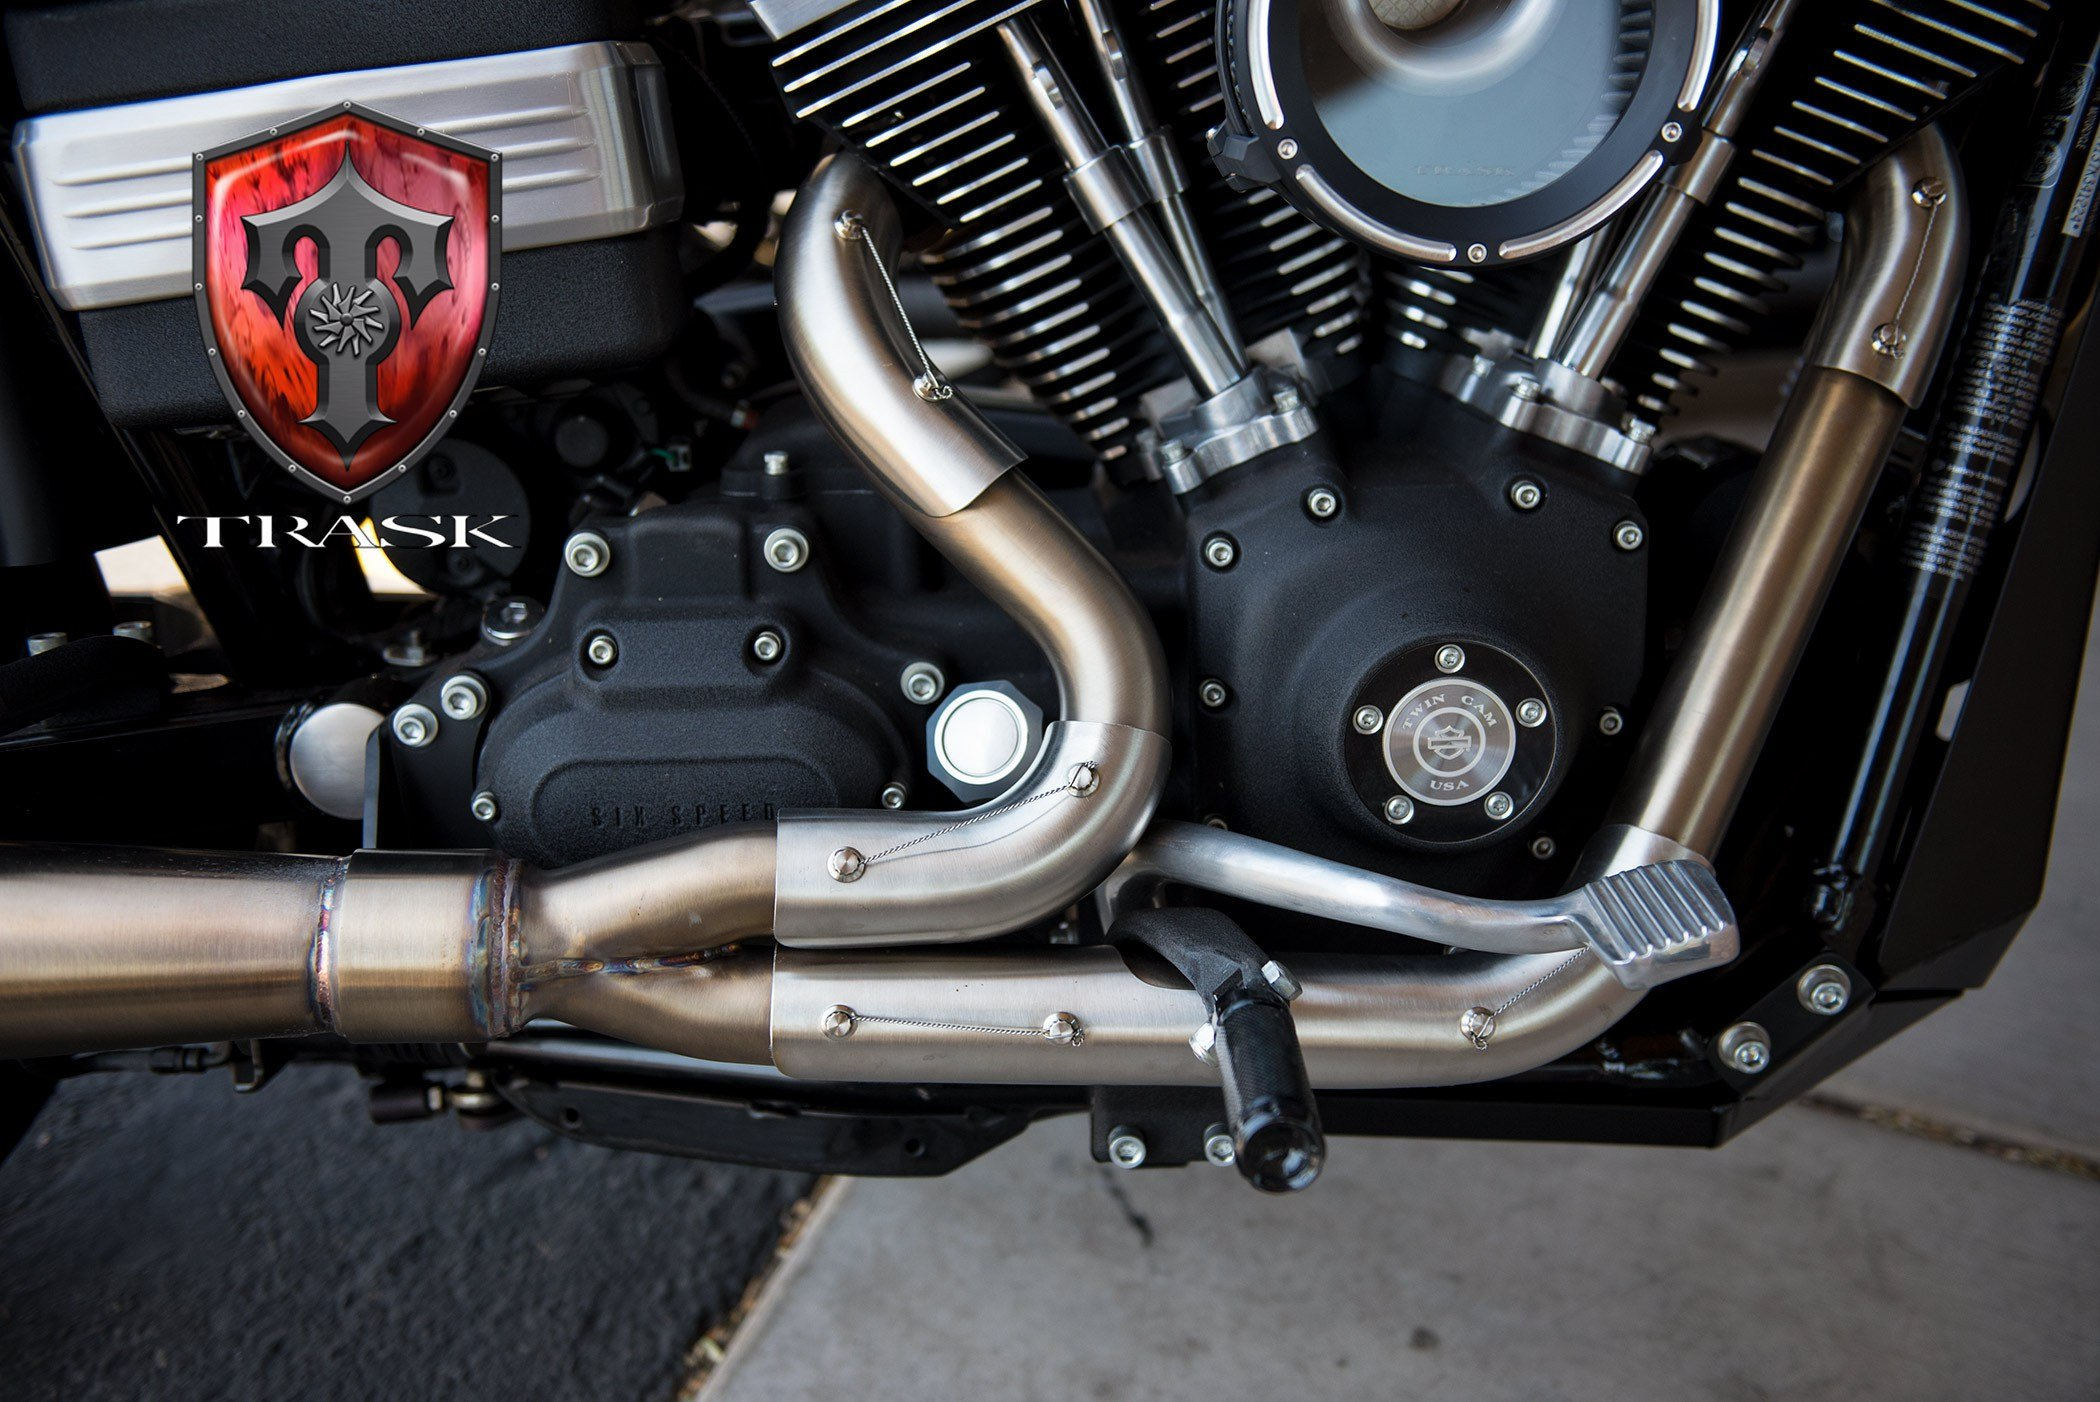 This Harley Davidson Exhaust Is Designed From The Ground Up To